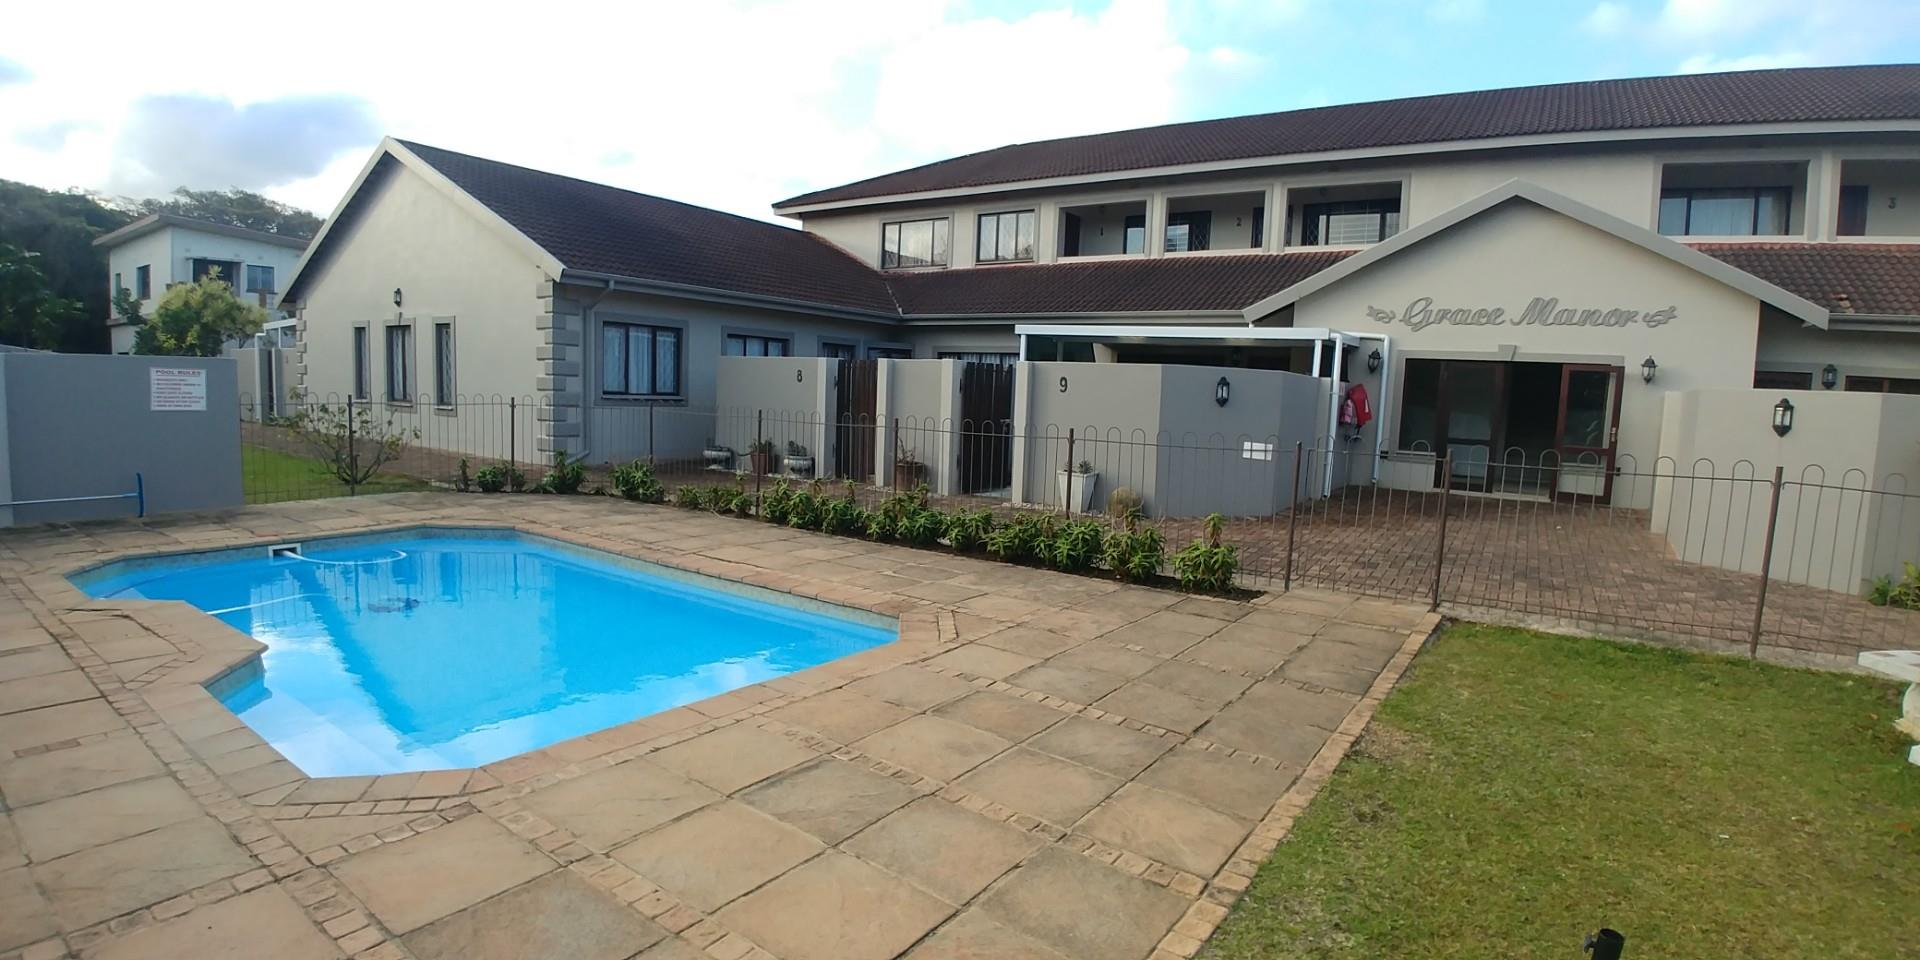 2 Bedroom Apartment / Flat For Sale in Glenmore